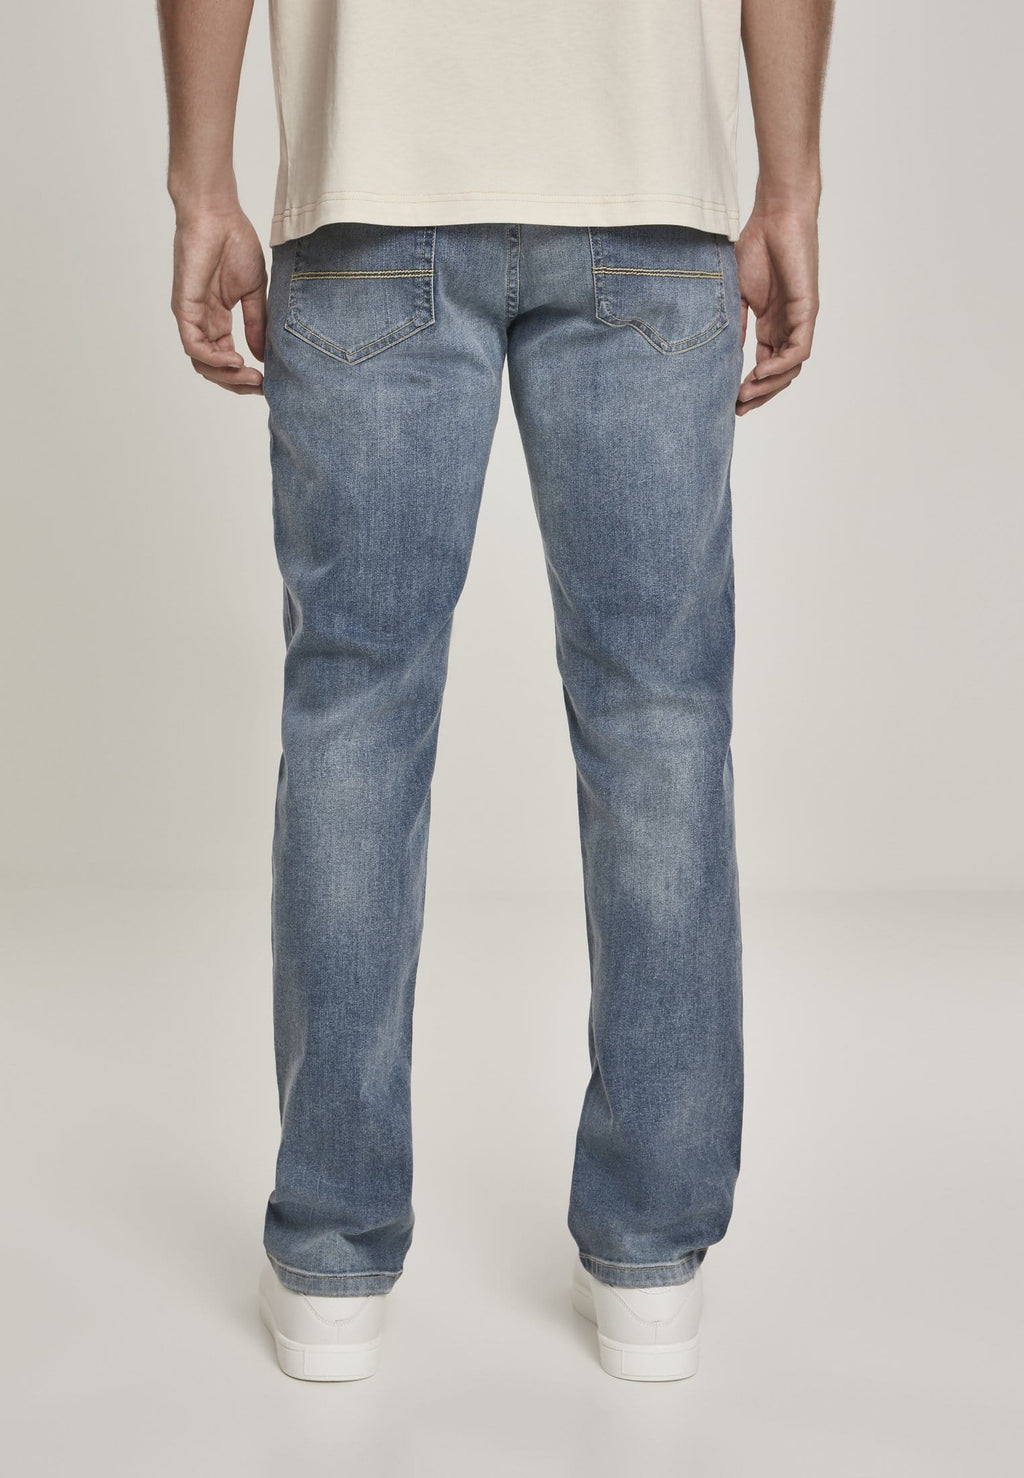 Relaxed Fit Jeans - Light Blue Wash